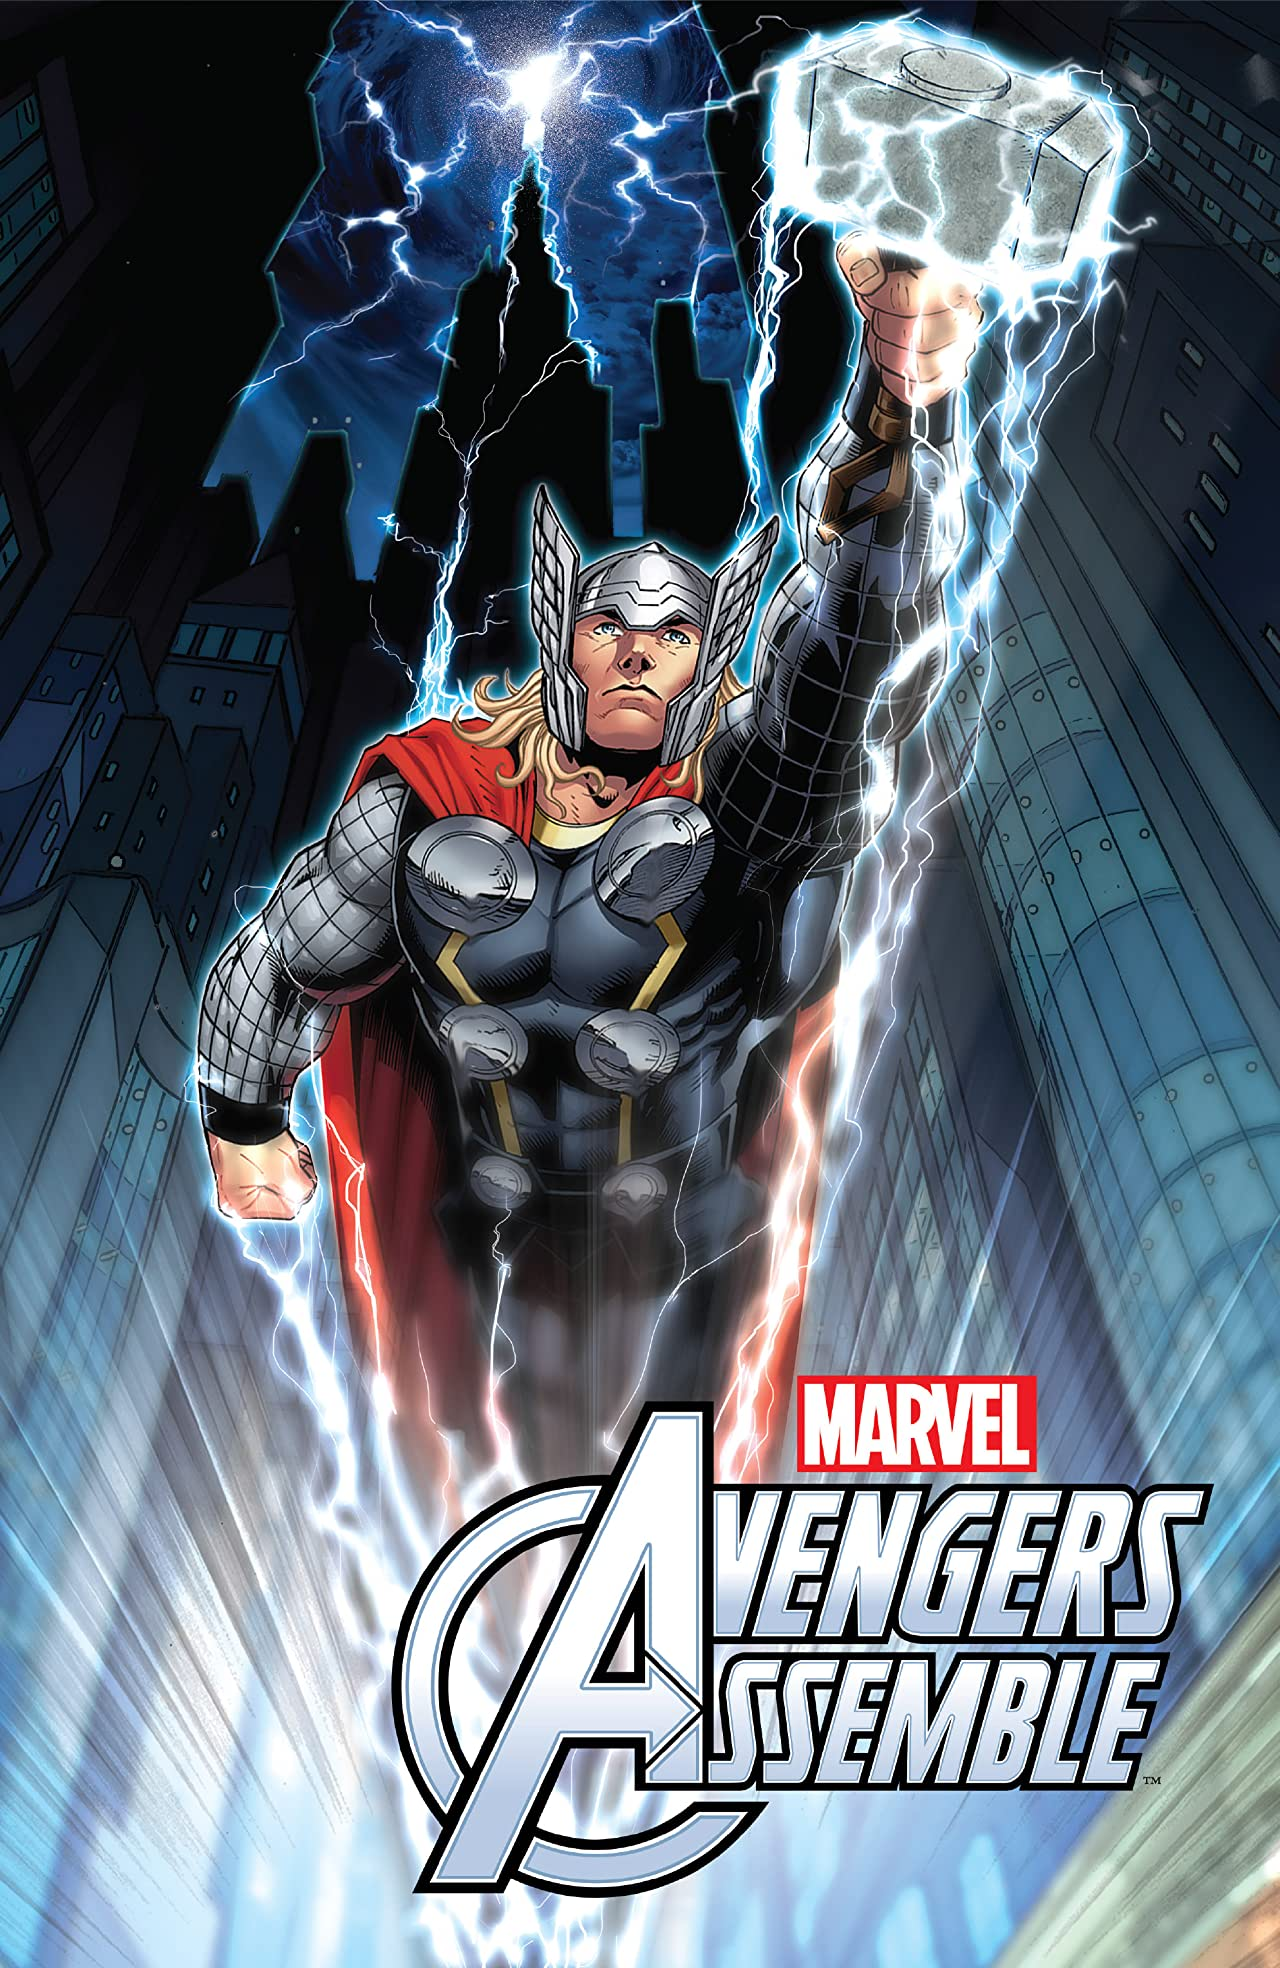 Marvel Universe All-New Avengers Assemble Vol. 3